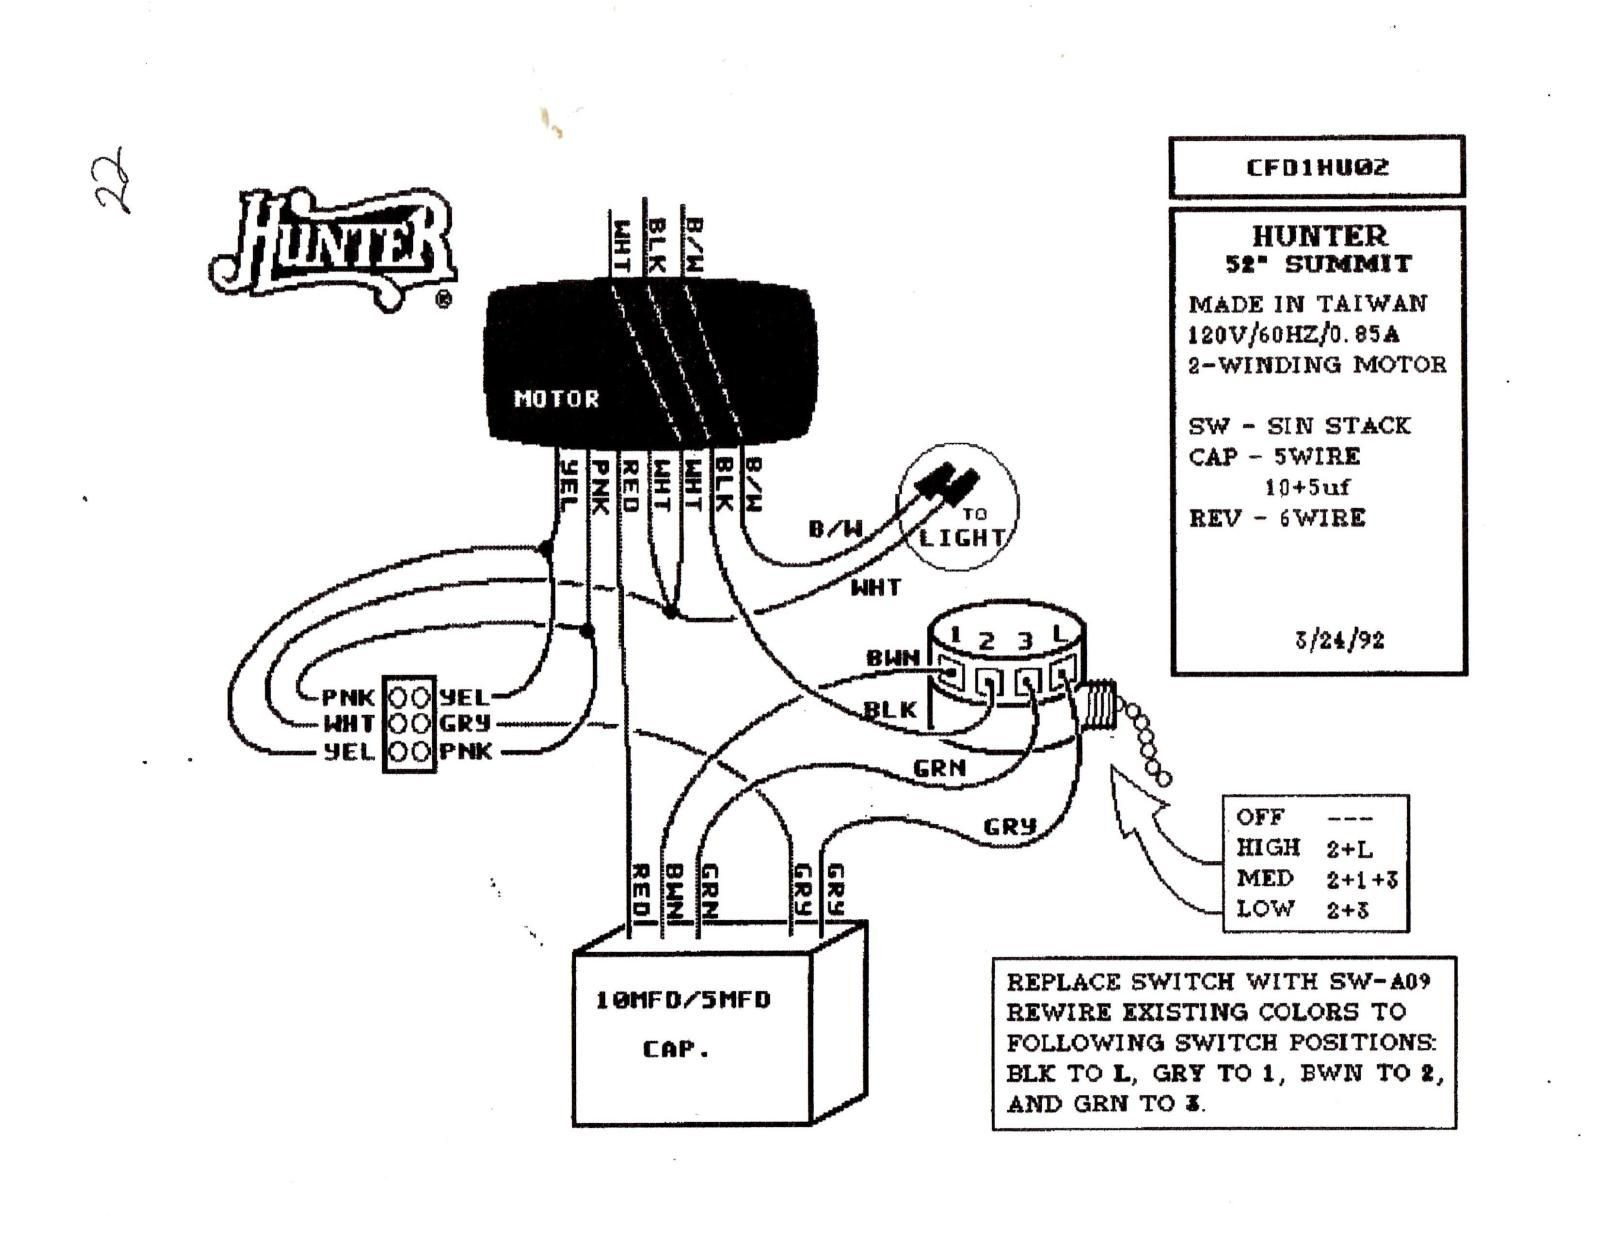 hunter ceiling fan and light control wiring diagram Download-Wiring Diagram for A Ceiling Fan with Remote Control Best Hunter Ceiling Fan with Remote Wiring 5-g